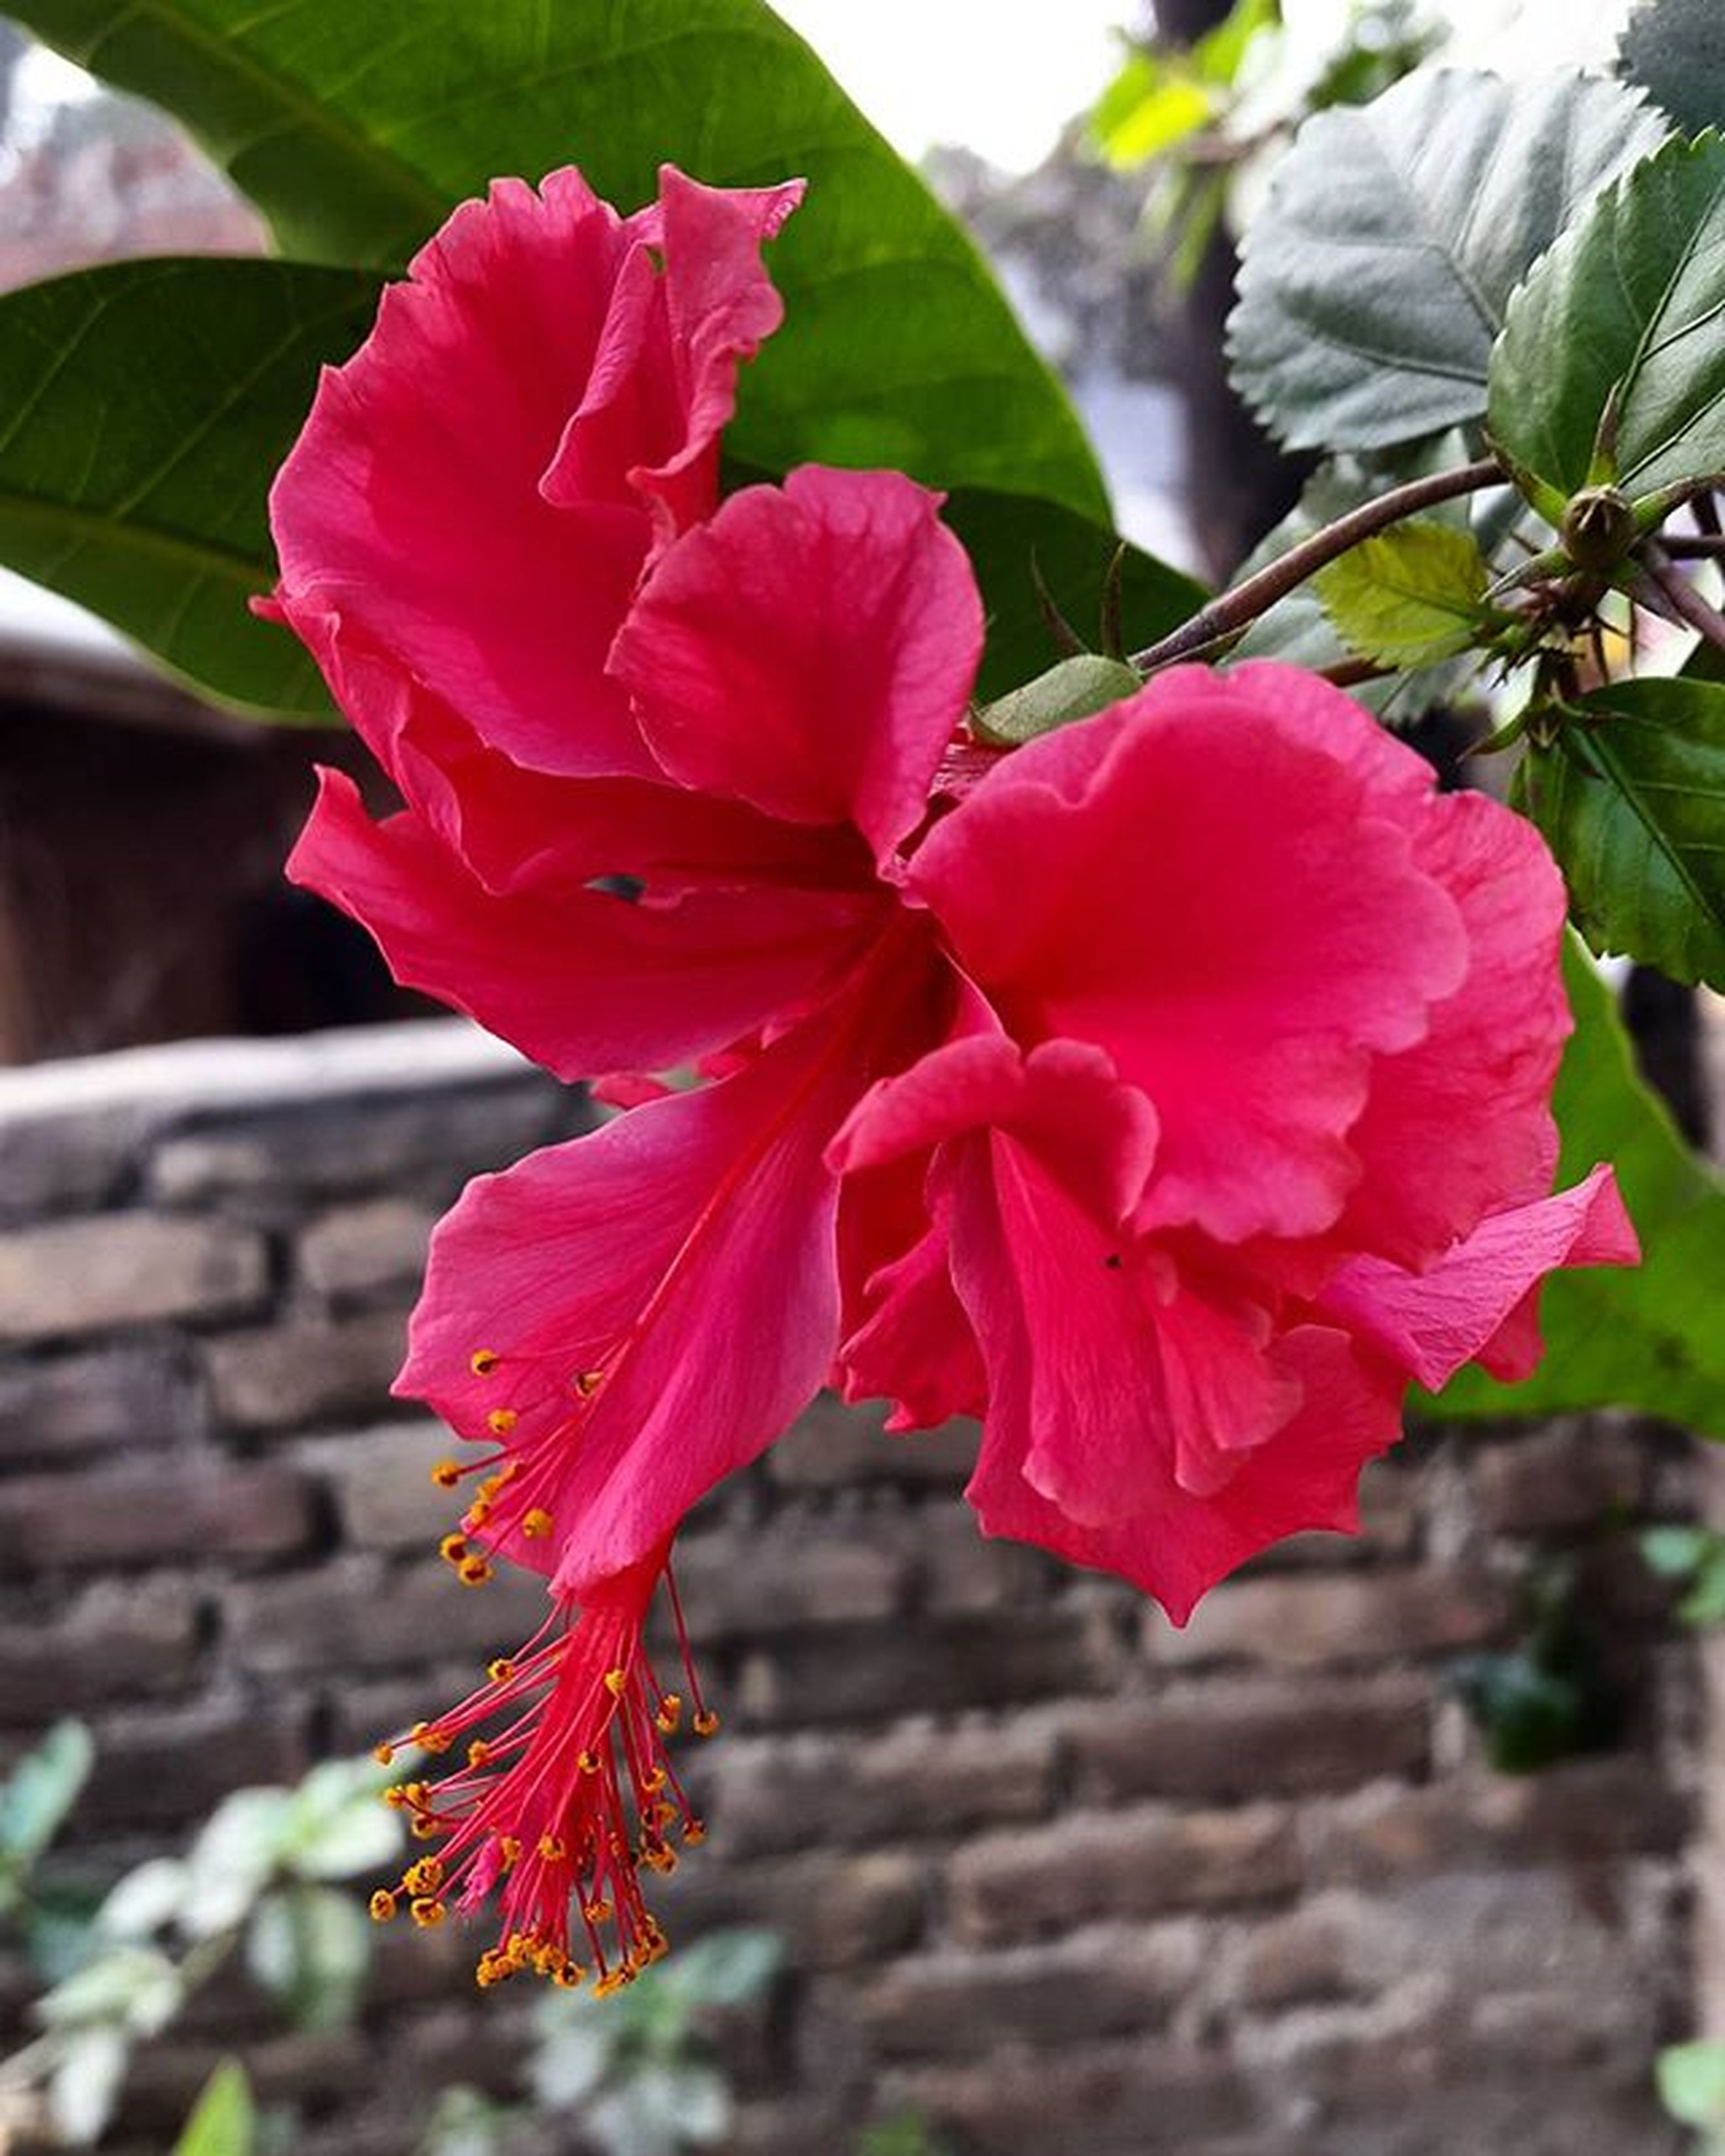 flower, petal, freshness, fragility, flower head, pink color, close-up, growth, beauty in nature, focus on foreground, red, blooming, nature, plant, leaf, in bloom, rose - flower, day, pink, blossom